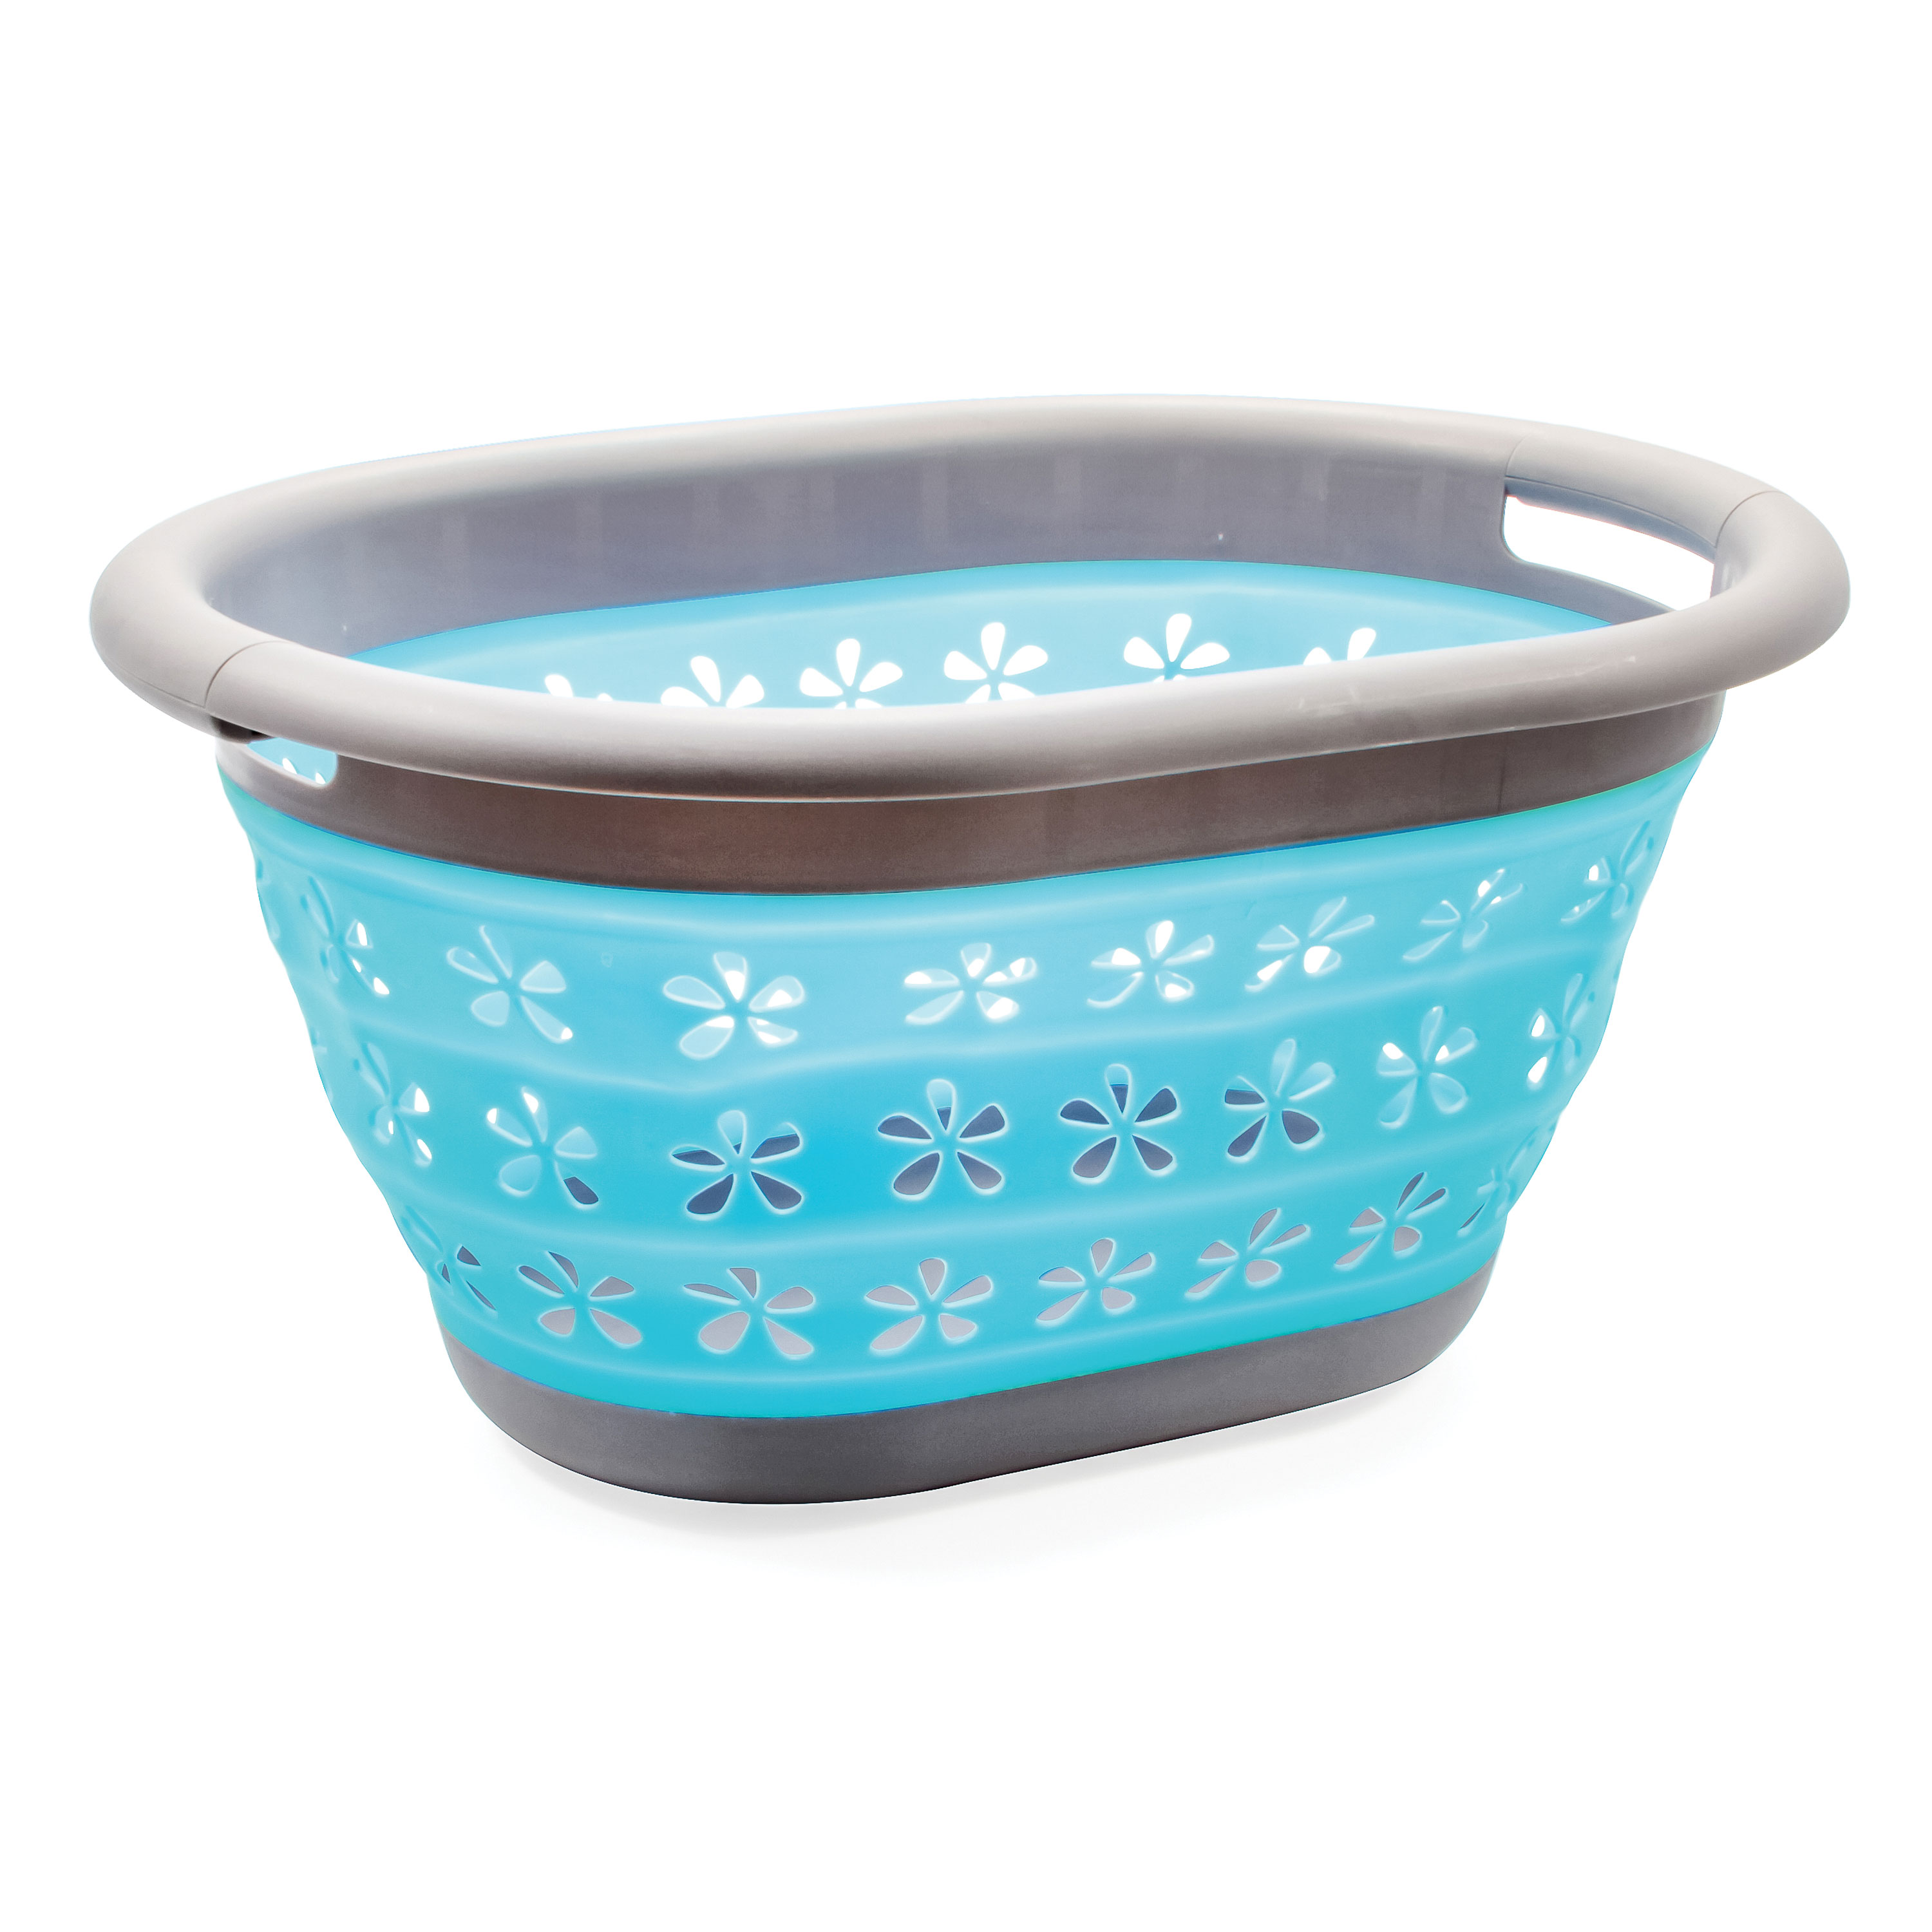 Camco 51902 Collapsible Utility Basket - Small, Gray/Teal